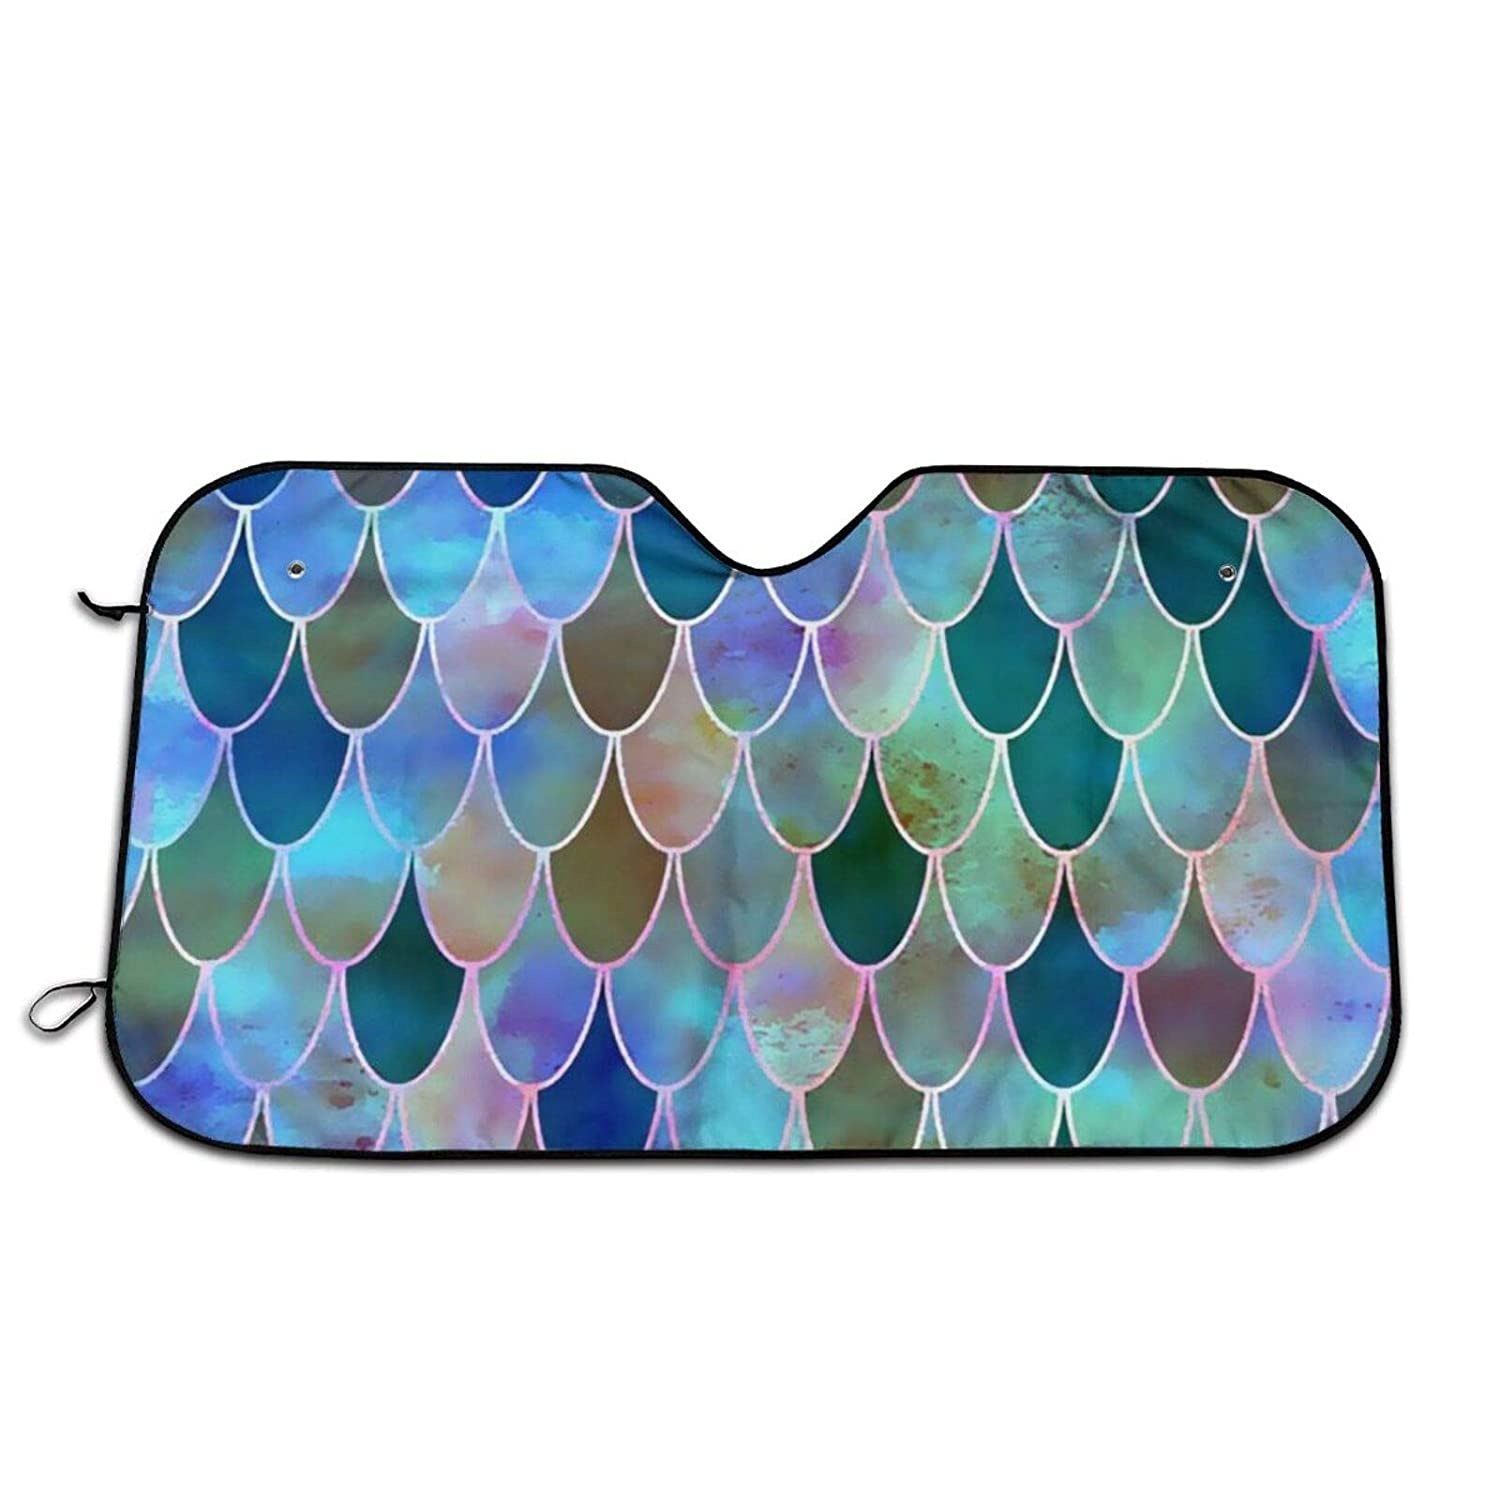 Bombing free shipping Durable Mermaid-Tile-Mermaid-Canvas Auto Windshield Sun Co Shade Quantity limited